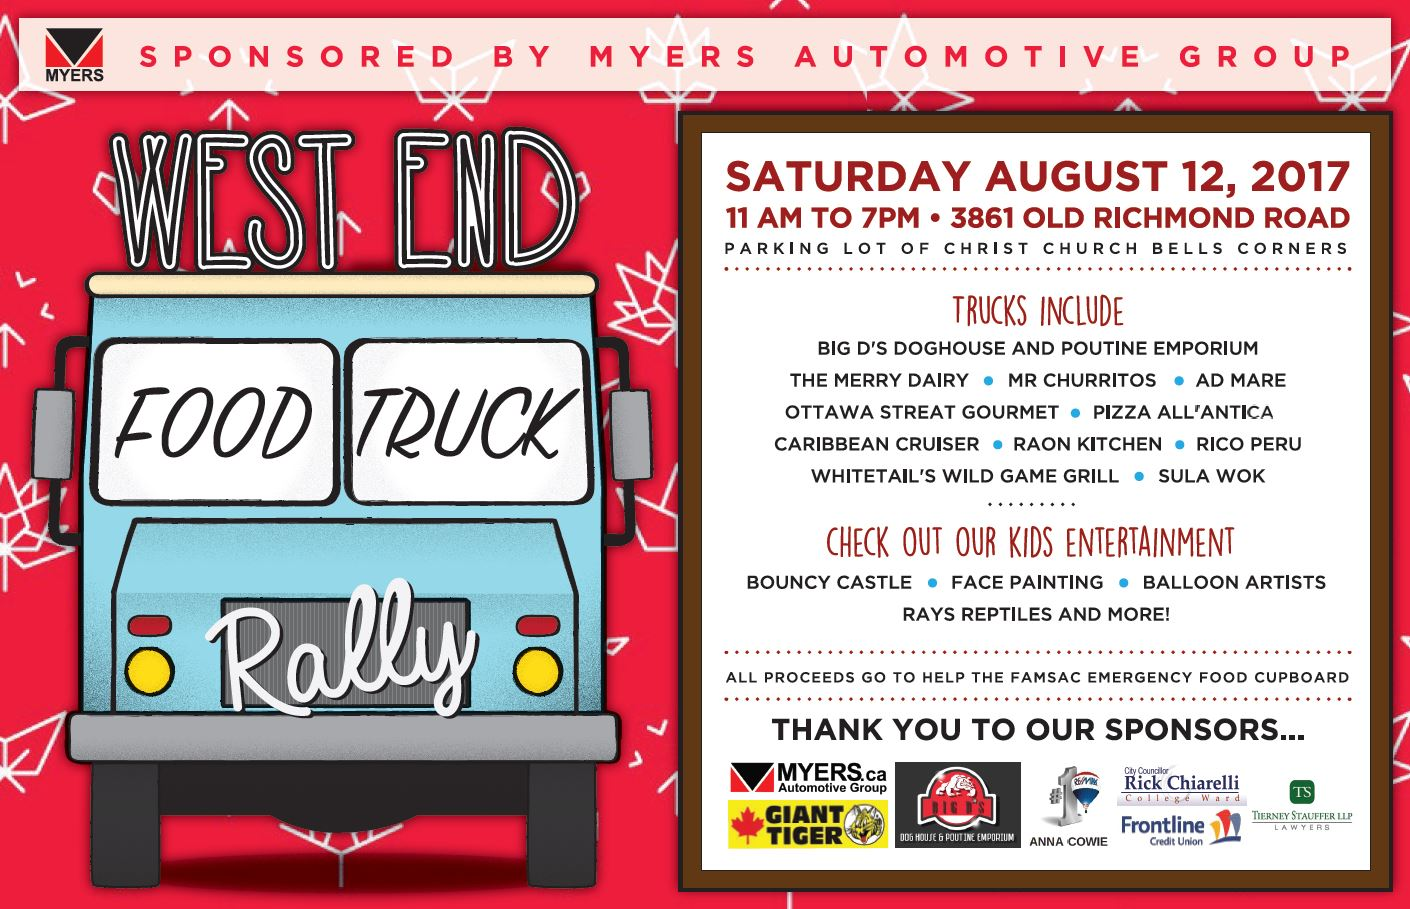 2017 West End Food Truck Rally